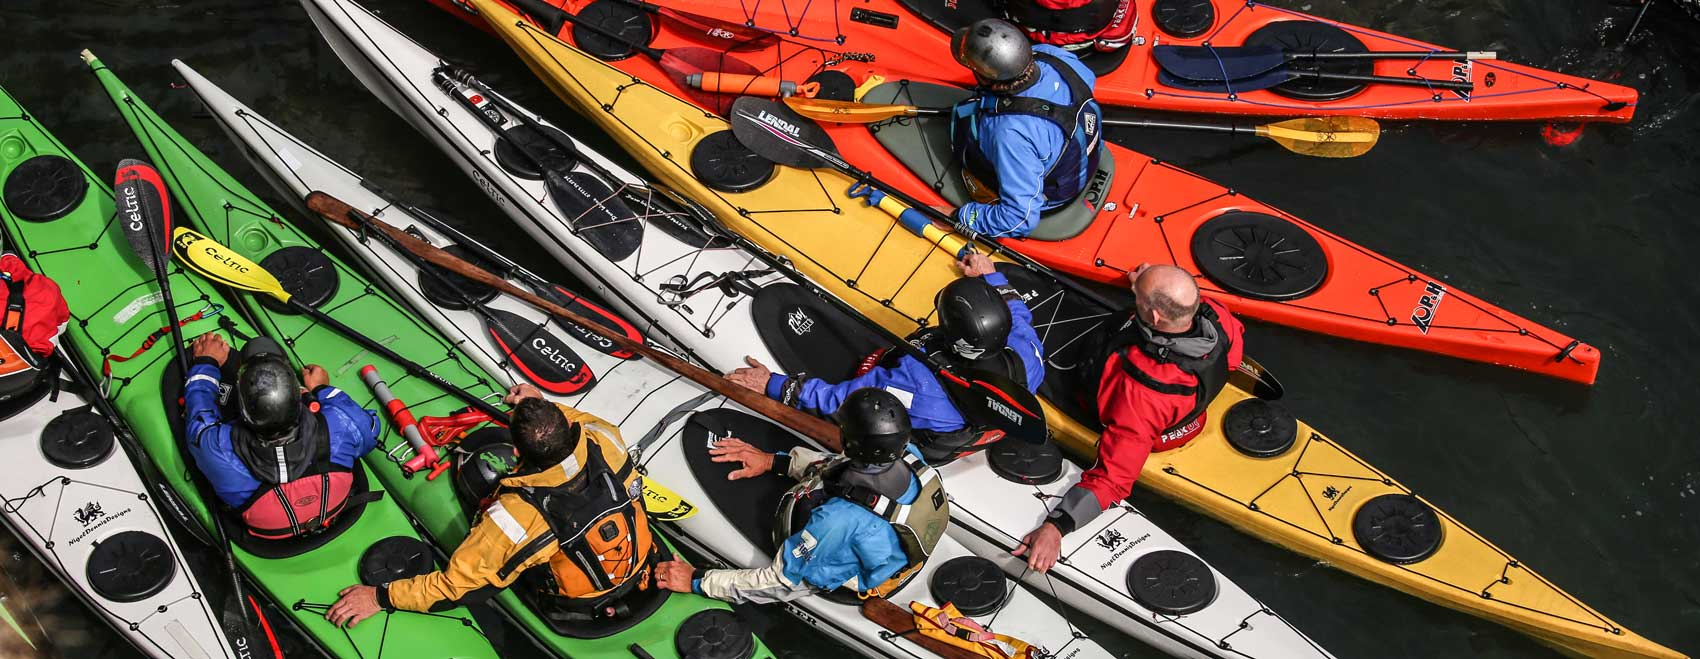 Karitek -Scotland's dealer for sea kayaks by SKUK by Nigel Dennis, Rockpool, P&H and more